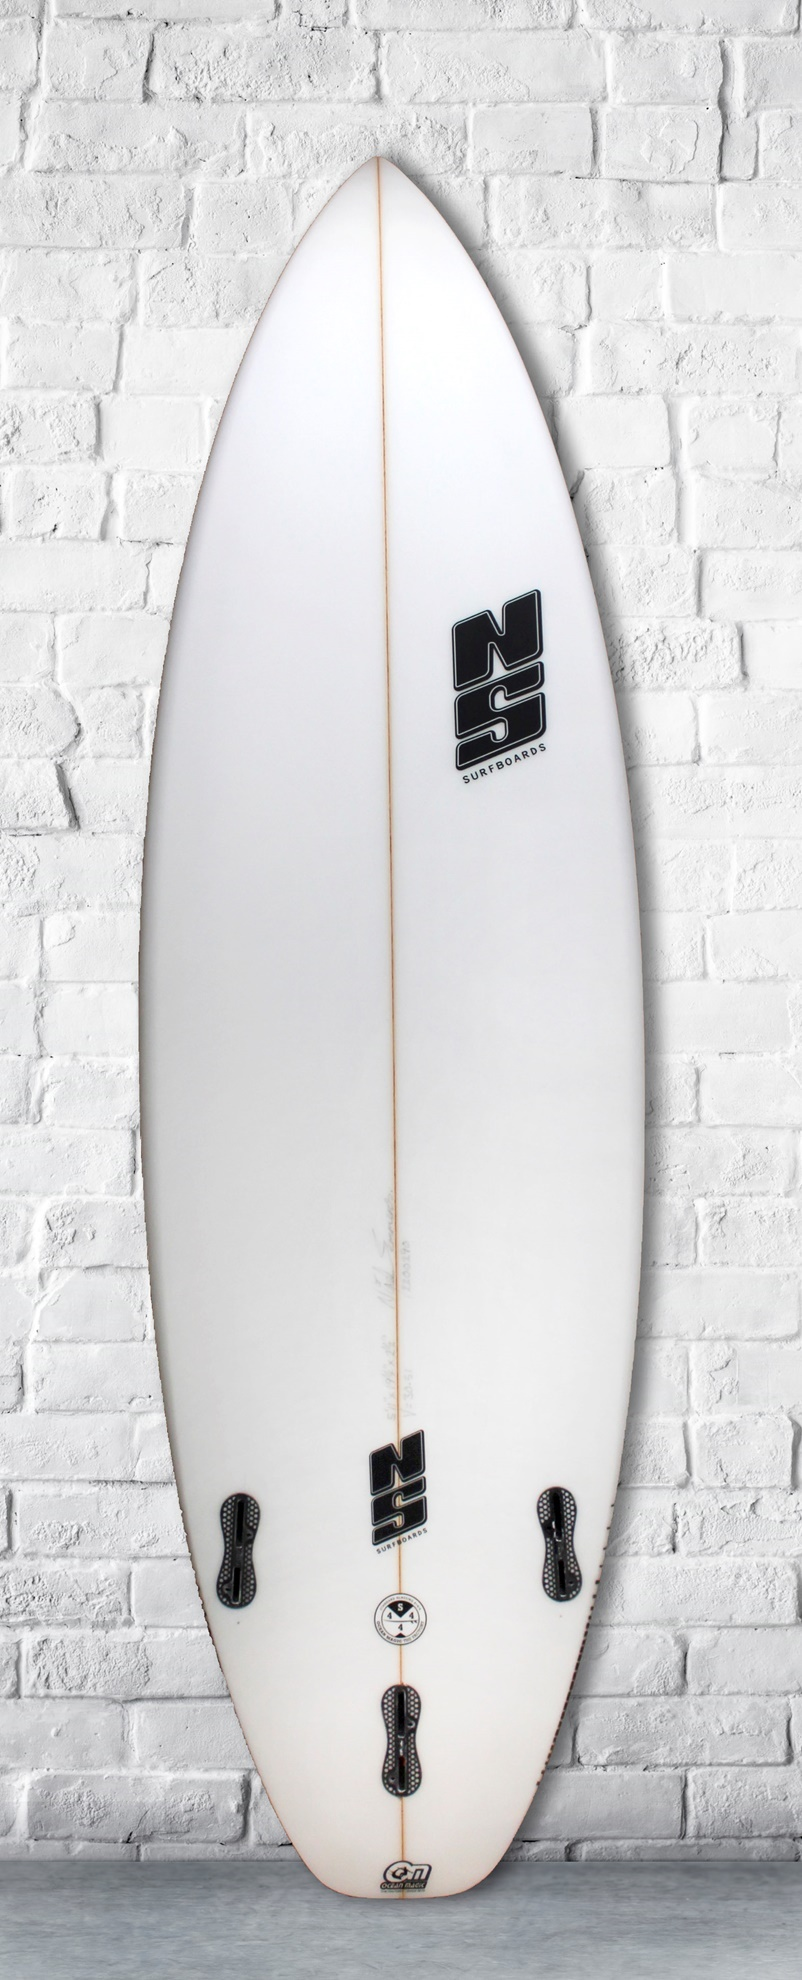 Picture of NS Dragonfly 5'11